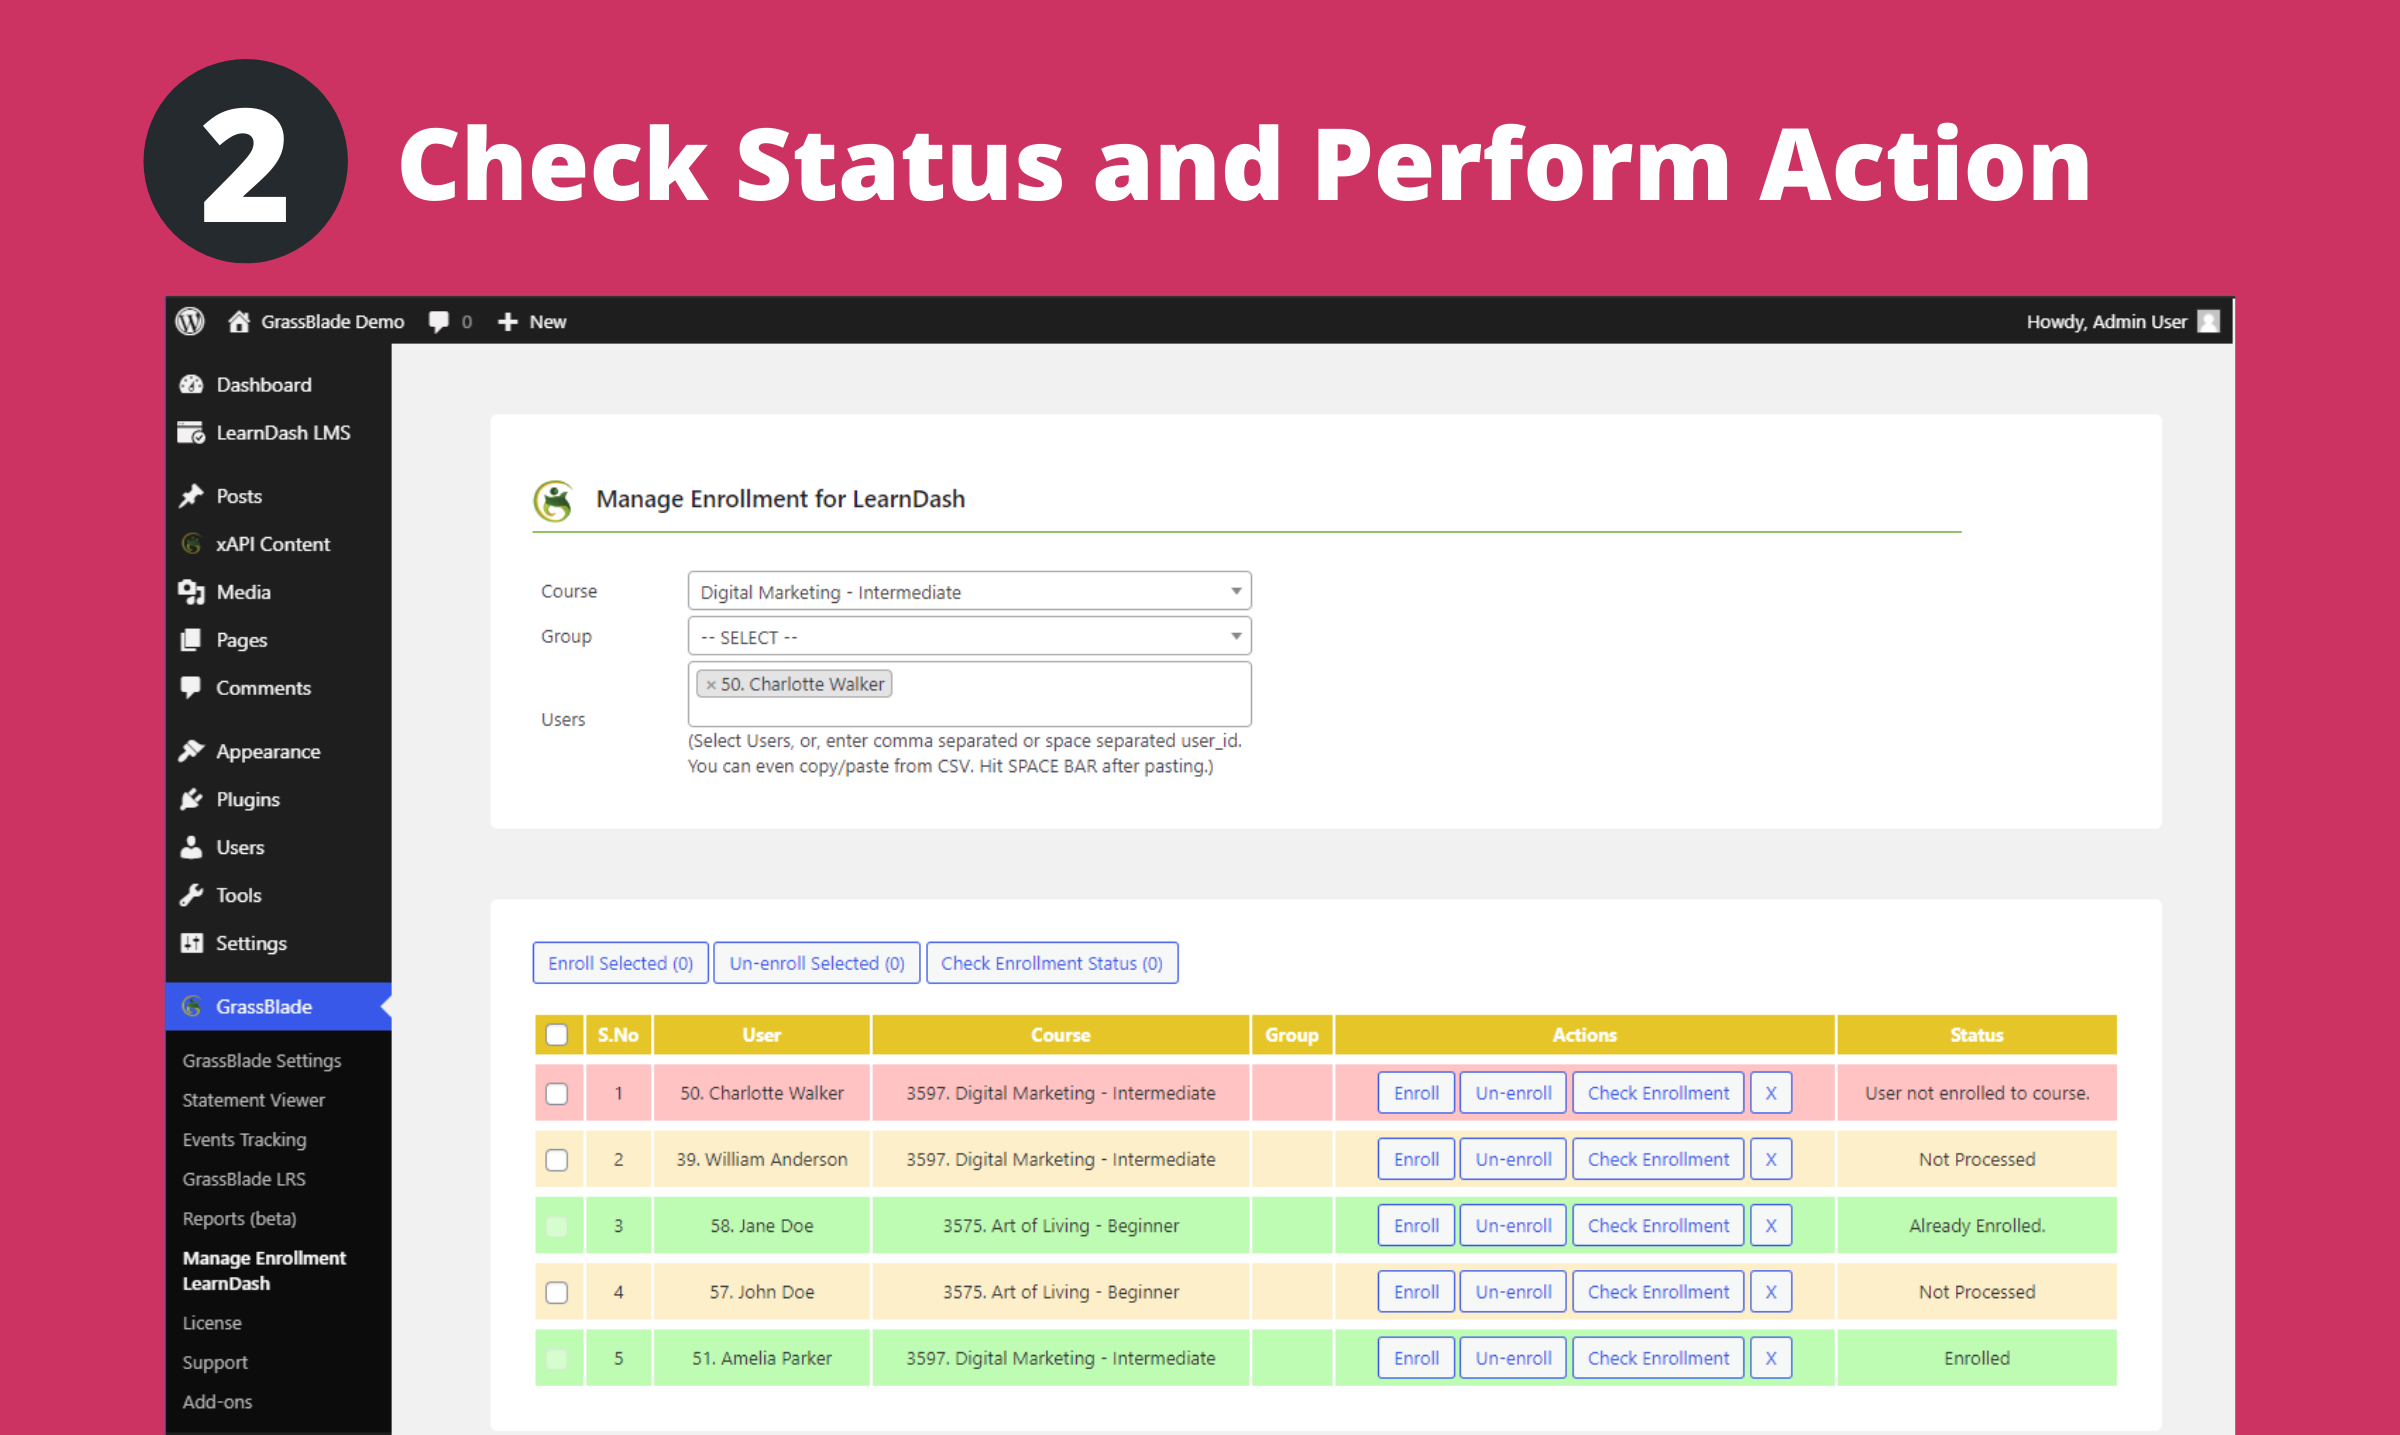 Checking status and perform an action